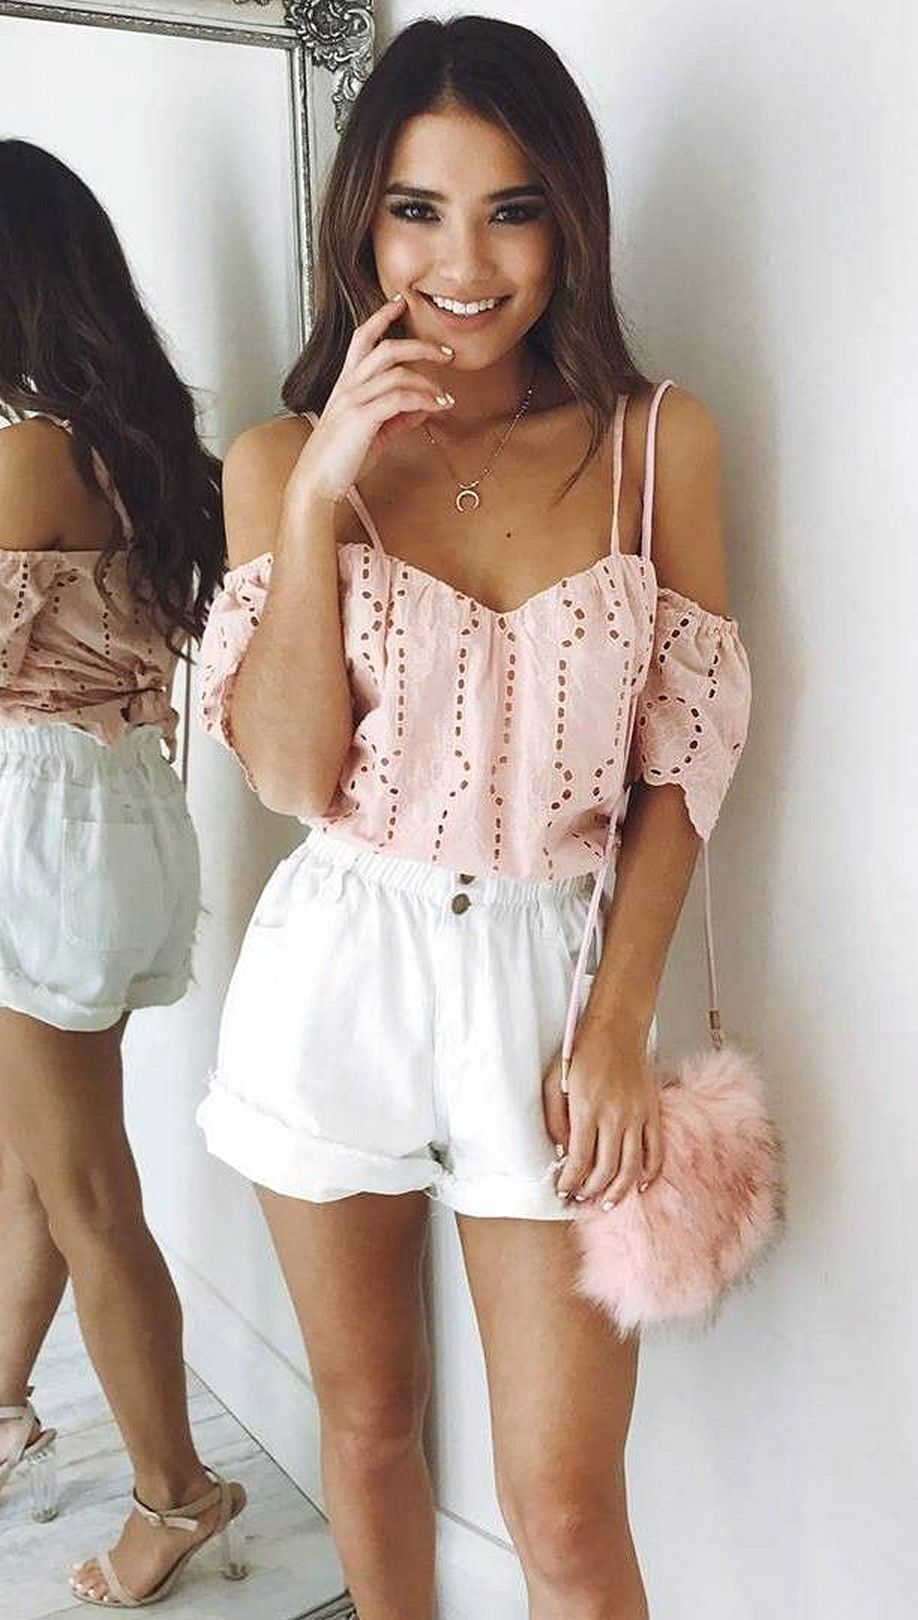 41 Cute And Popular Girly Outfits Ideas Suitable For Every Woman